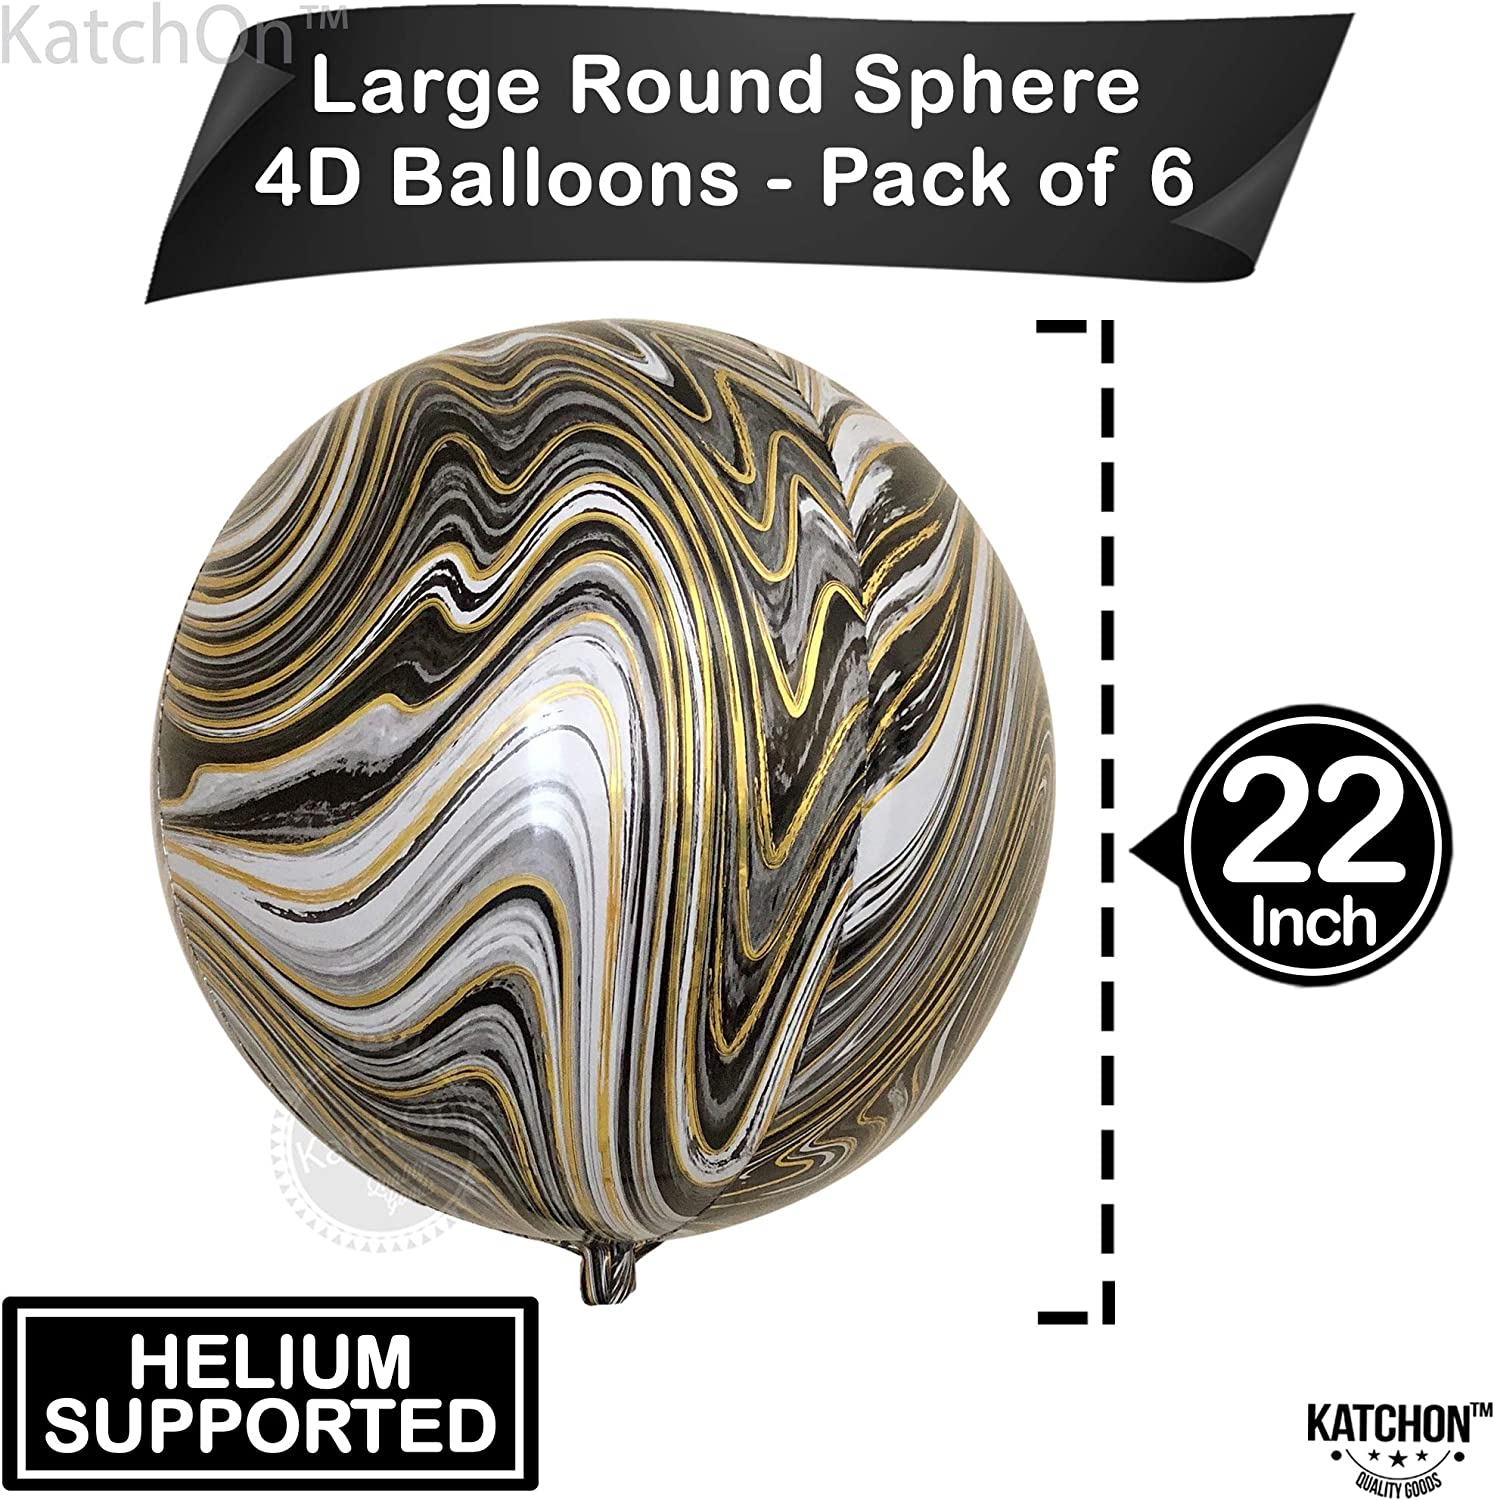 Metallic 4D Round Foil Balloons for Birthday Bachelorette Agate Black Balloons Pack of 6 Black 360 Degree Sphere Marble Balloons Large Graduation 22 Inch Black and Silver Marble Balloons